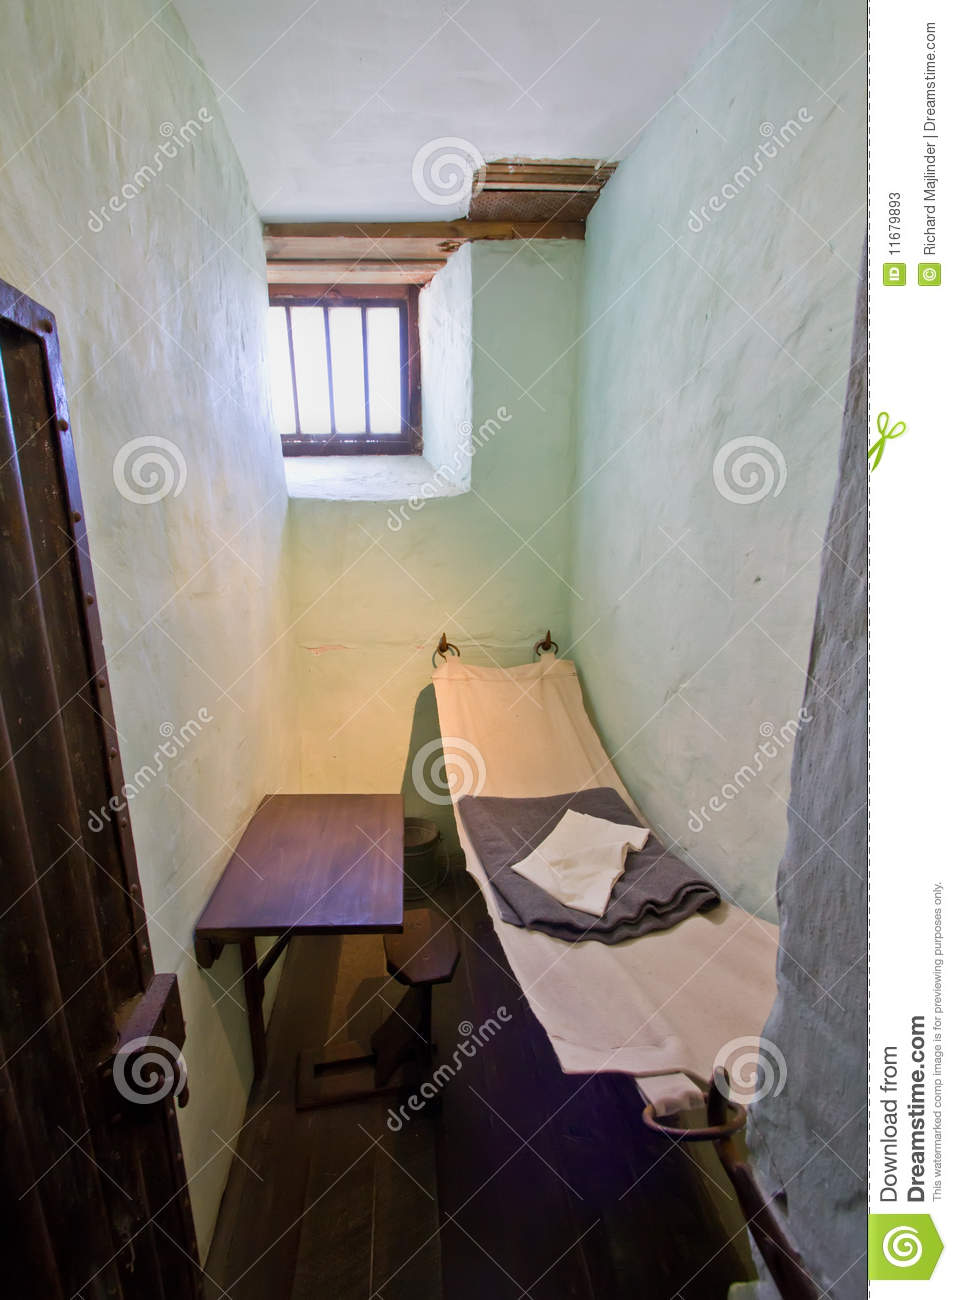 Small Stool Very Small Cell In An Old Prison Stock Image - Image Of